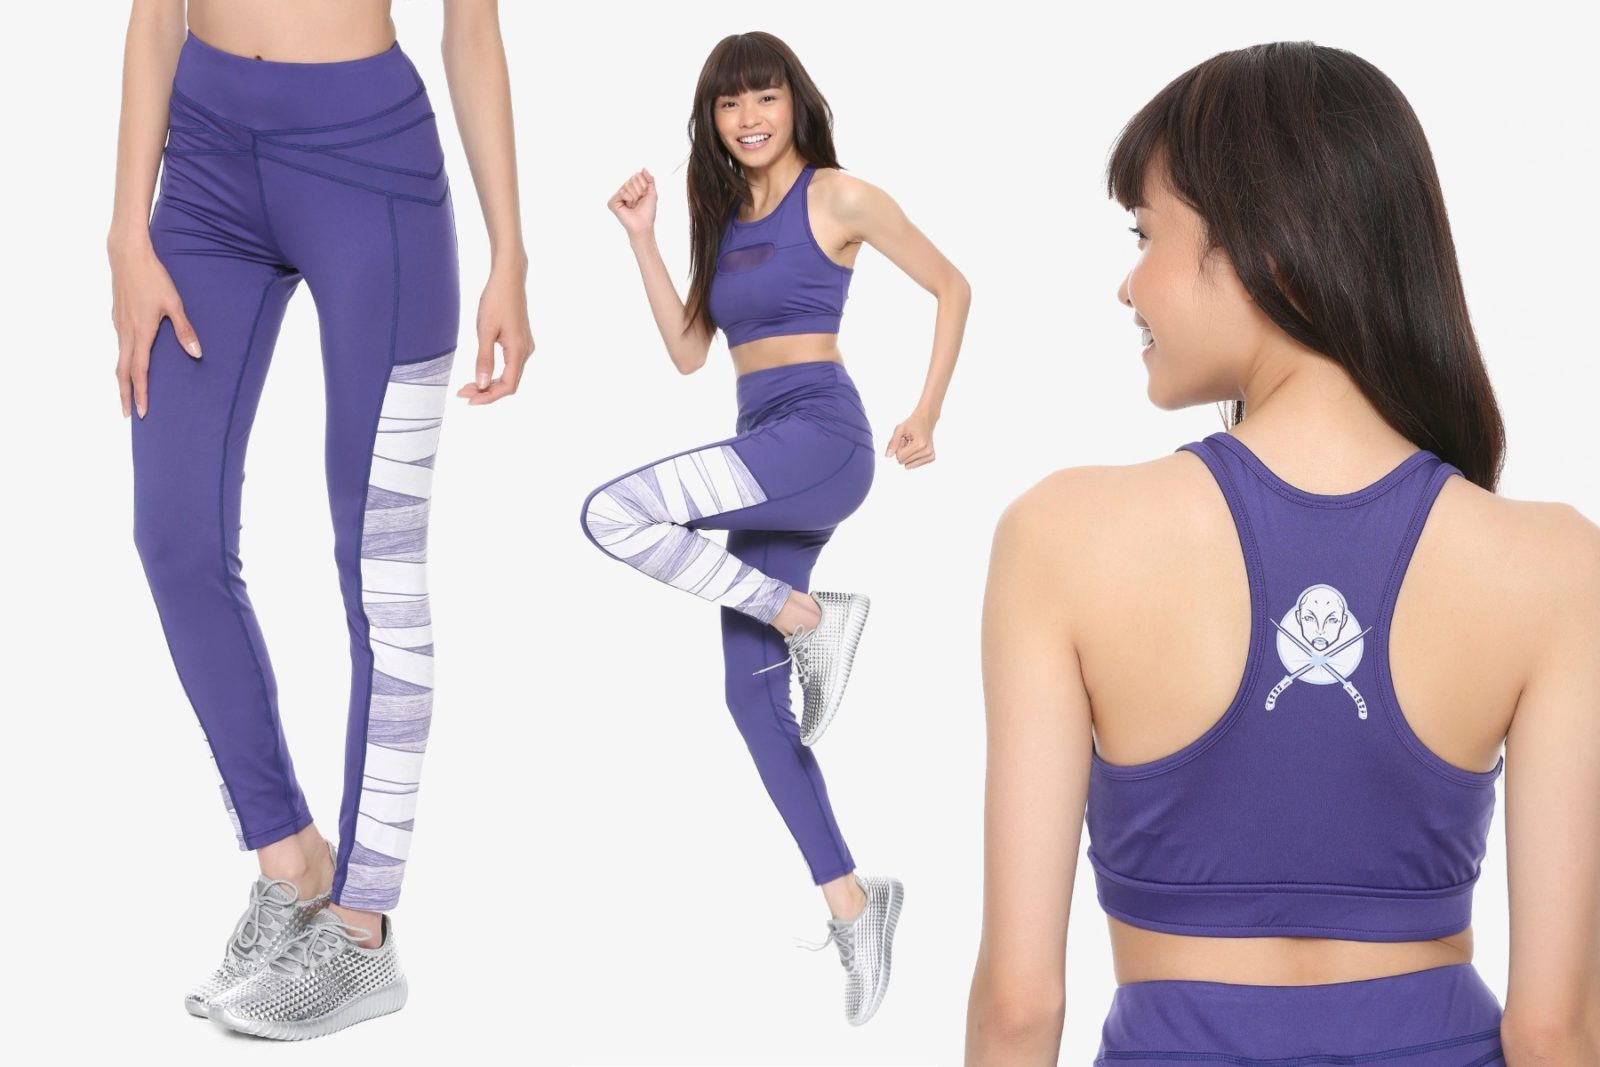 Her Universe Asajj Ventress Activewear Collection